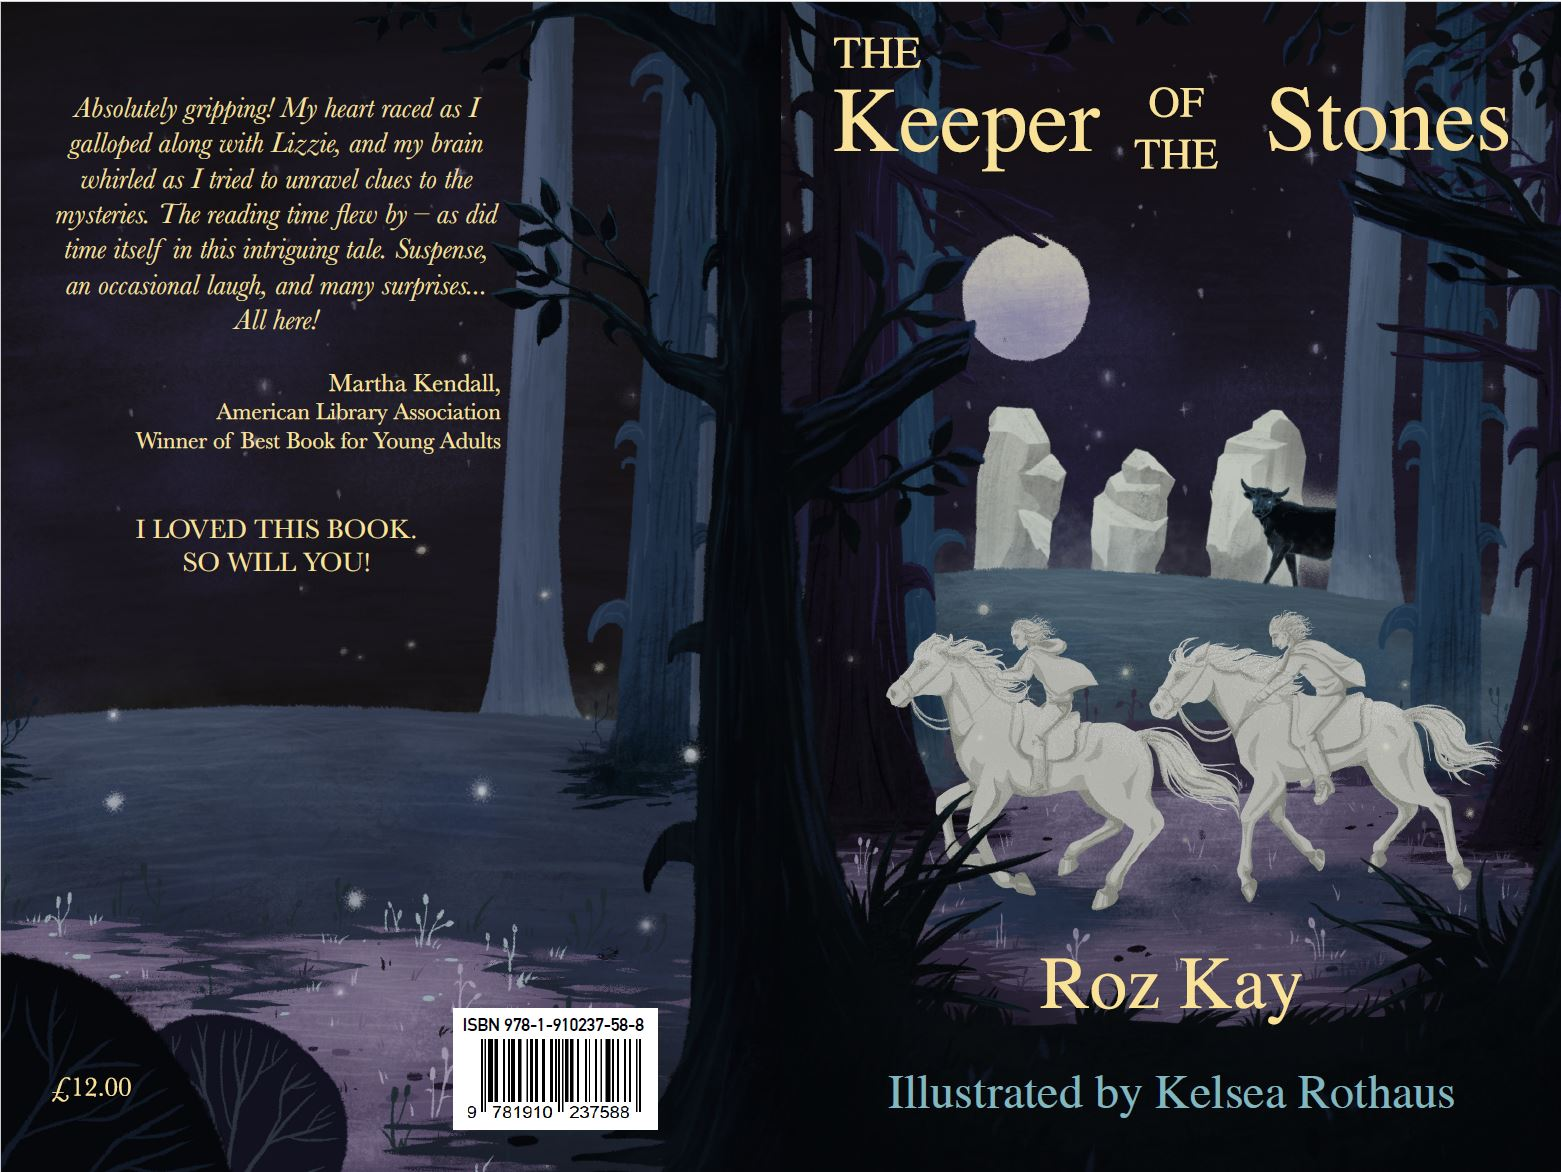 The Keeper of the Stones_Cover Spread.jpeg